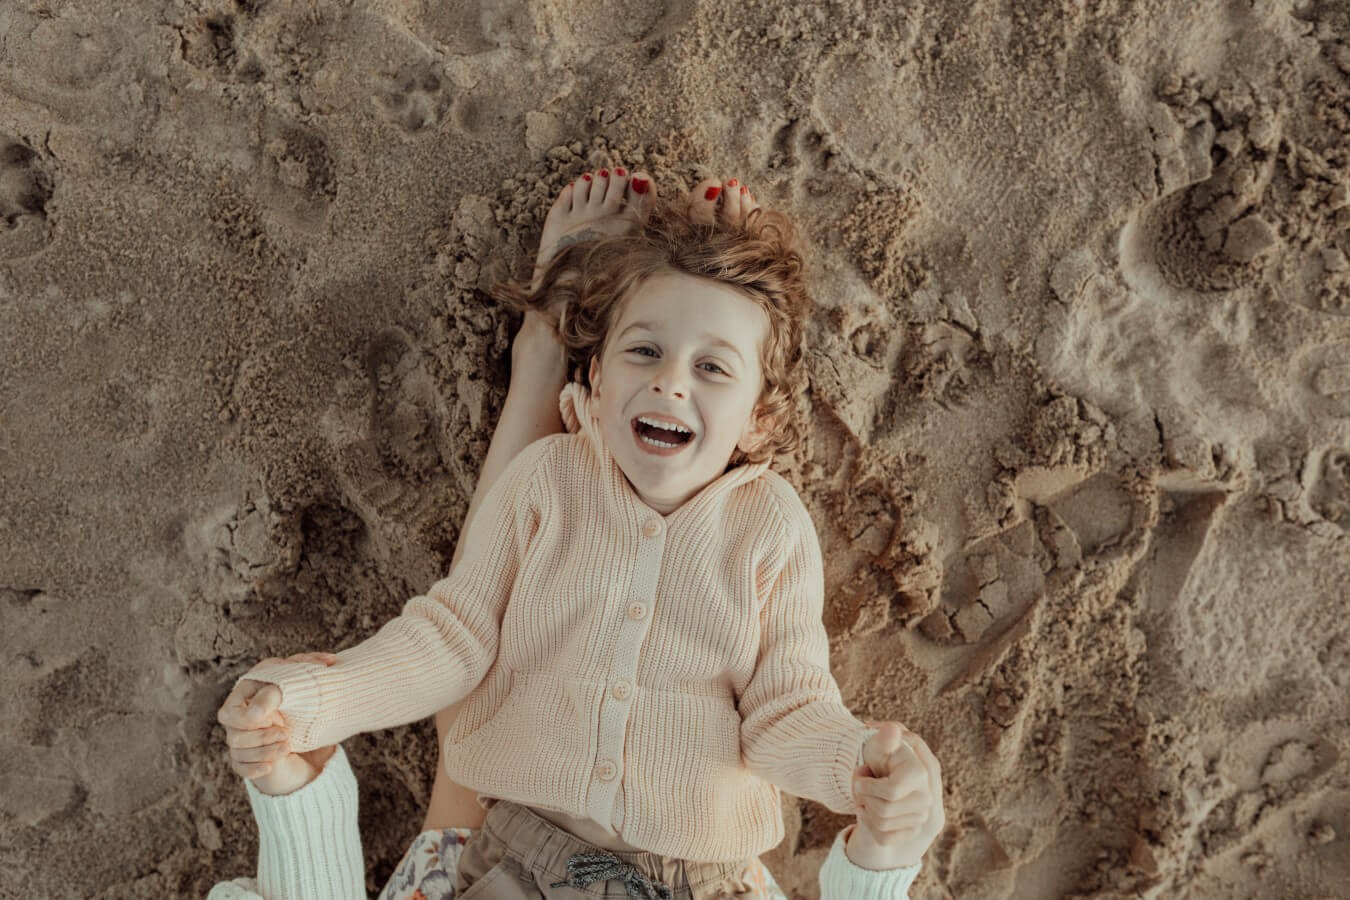 A young boy lies on the legs of his mother against the sand on the beach. His mother holds his hands while he laughs up at the camera.